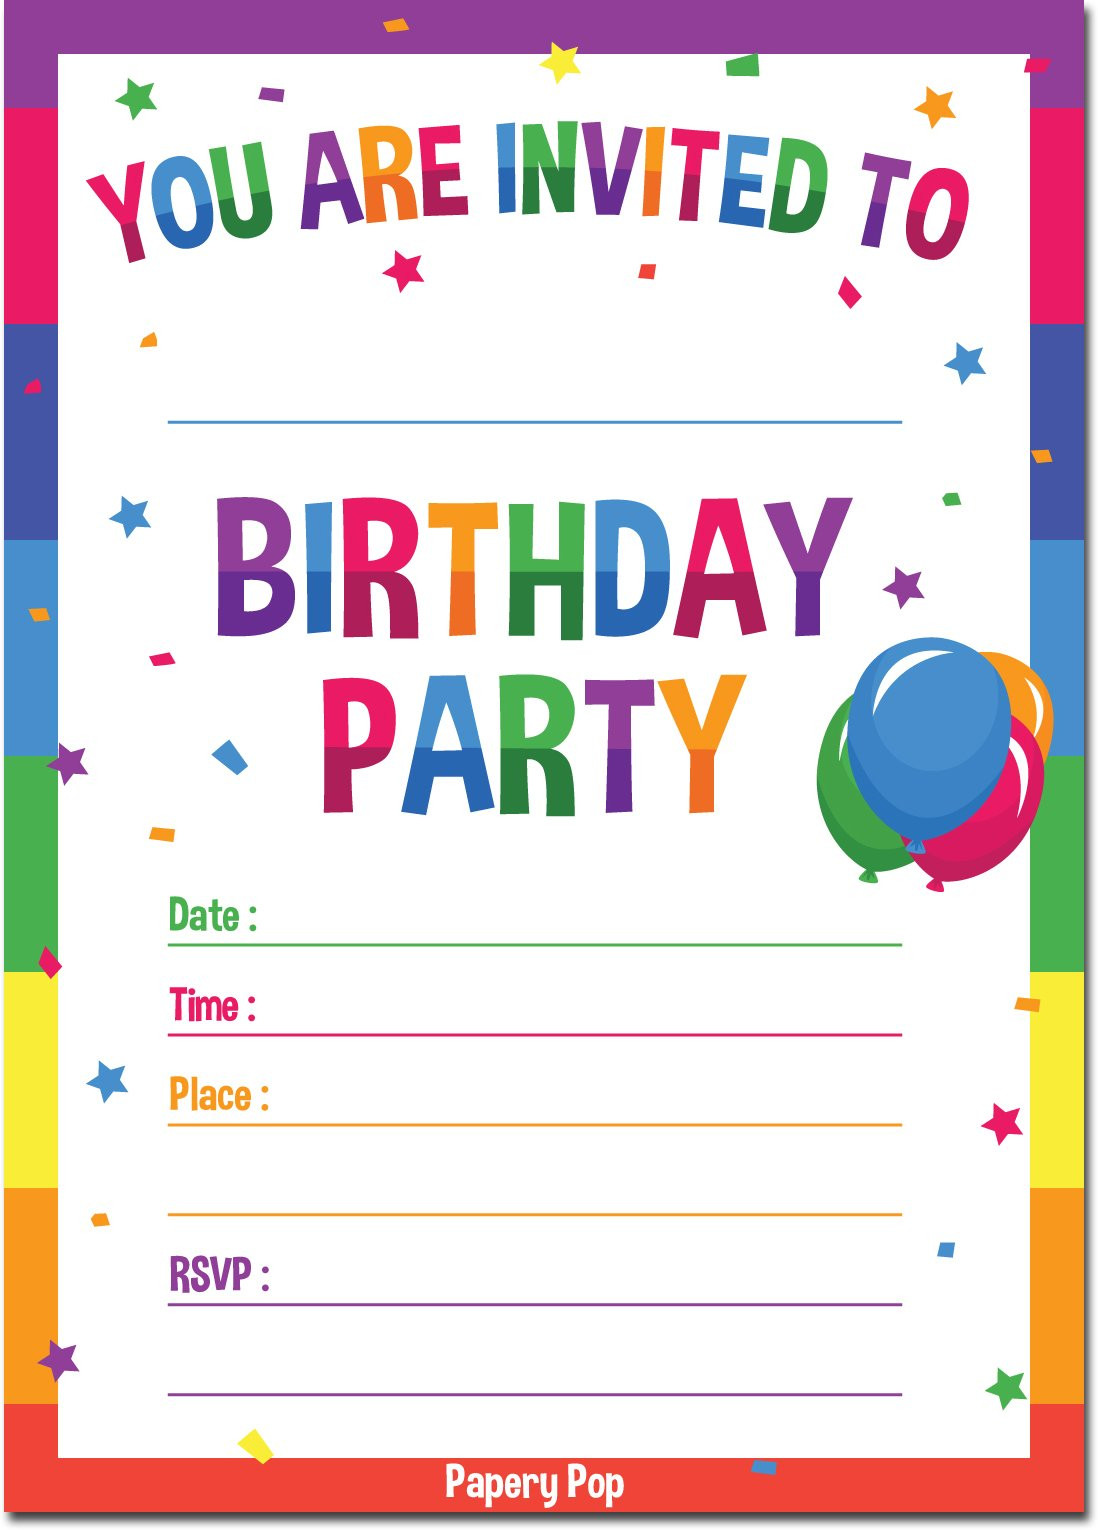 Toddler Birthday Invitations  Galleon Birthday Invitations With Envelopes 15 Count